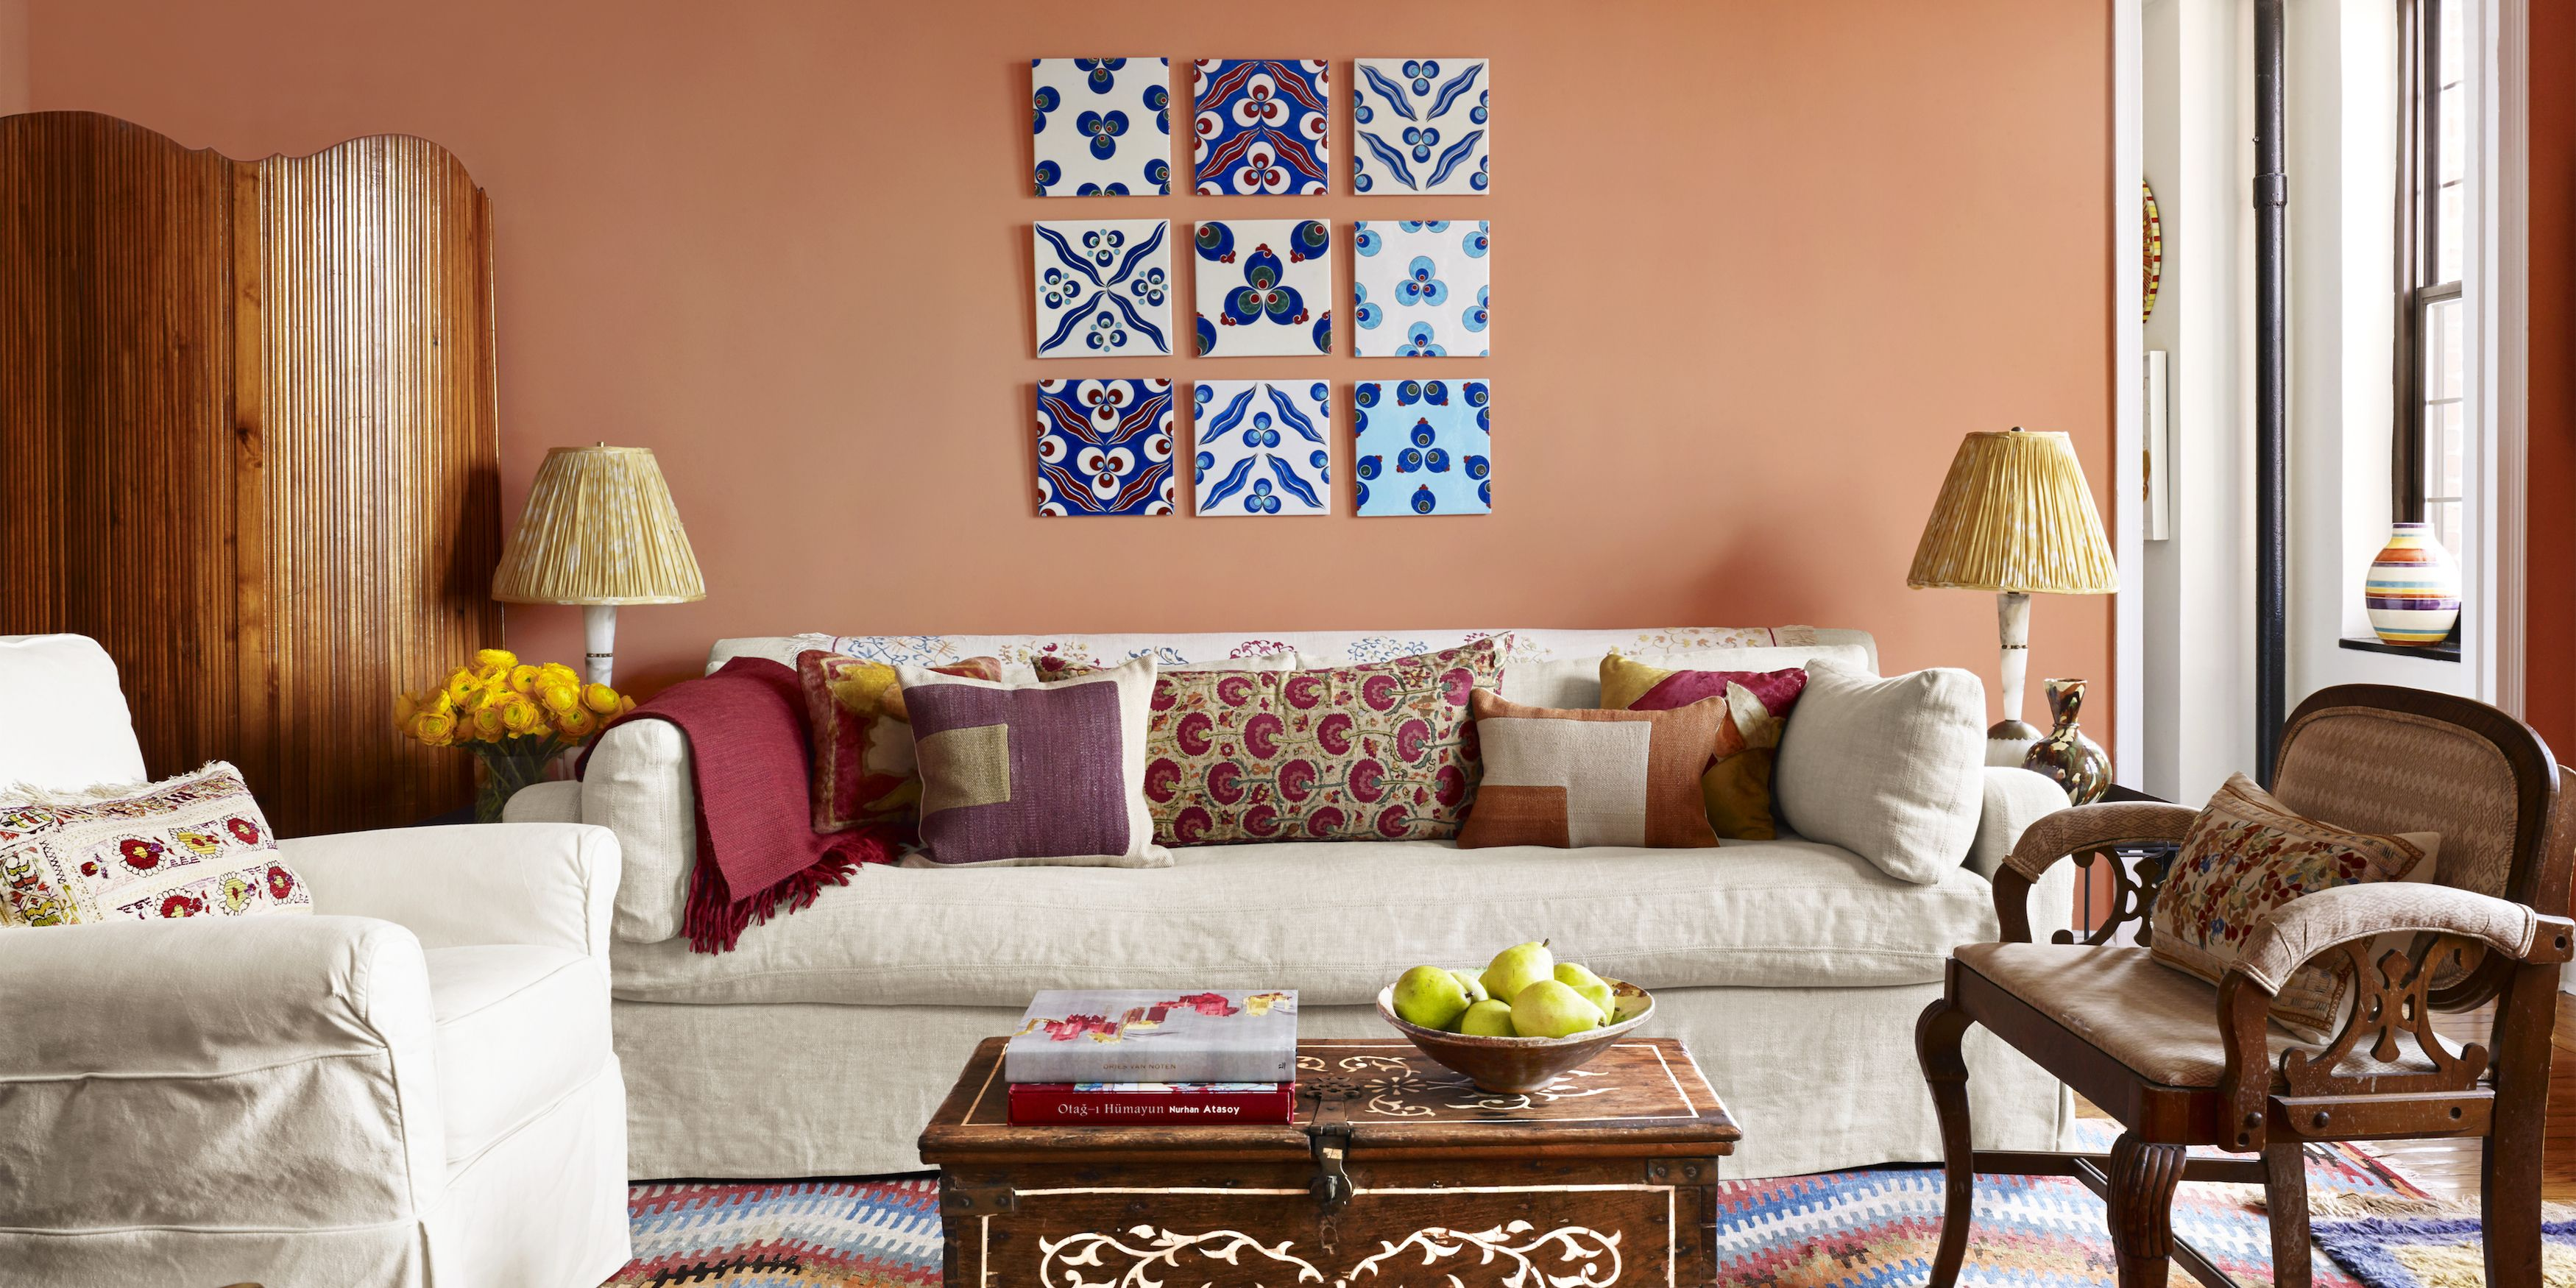 20 Bohemian Room Decor Ideas for the Ultimate Free Spirit